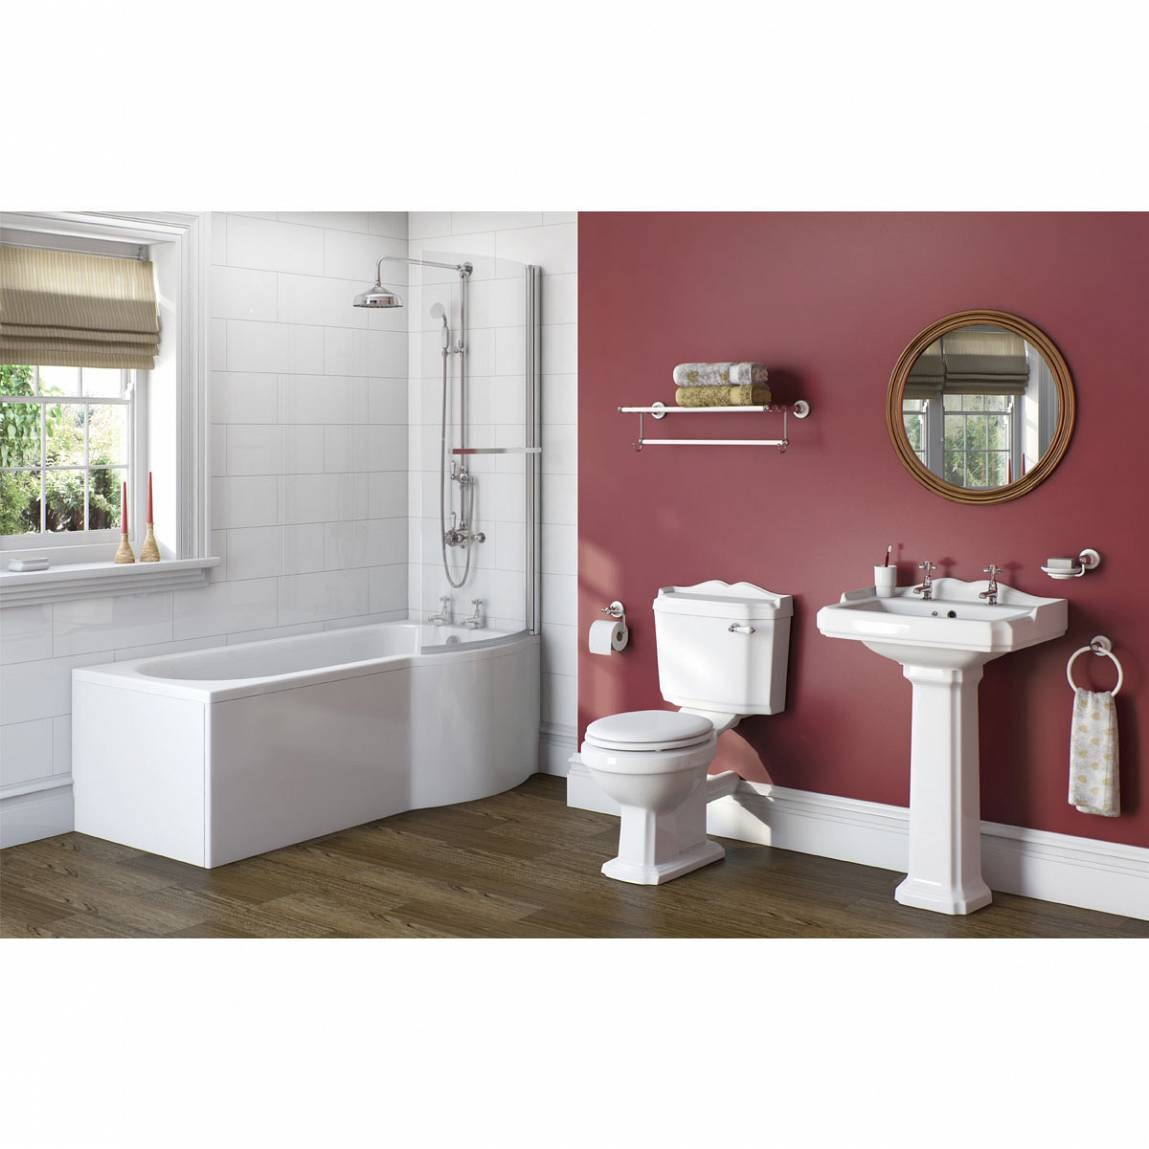 The Bath Co. Winchester bathroom suite with right handed P shaped shower bath and taps 1675 x 850